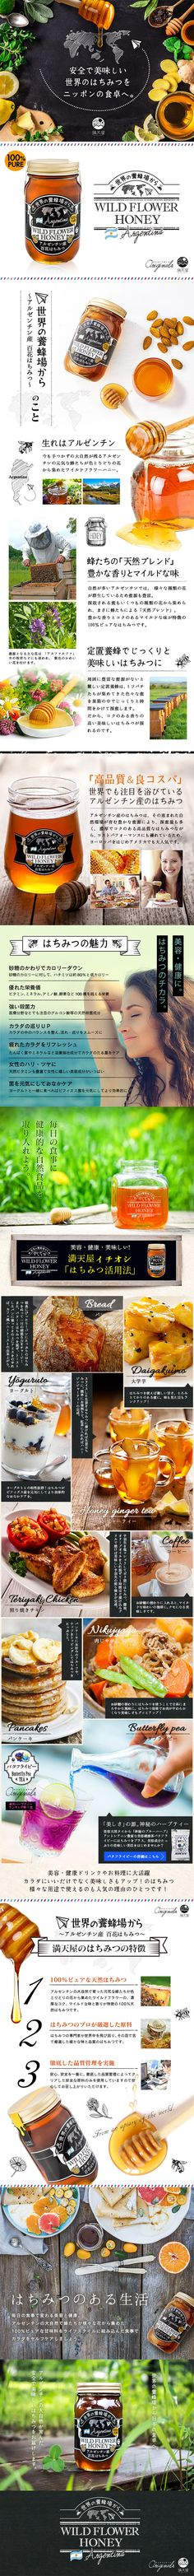 アルゼンチン産 百花はちみつ                                                                                                                                                                                 もっと見る Food Web Design, Best Web Design, Site Design, Web Banner Design, Web Layout, Layout Design, Ui Web, Japan Design, Web Design Inspiration